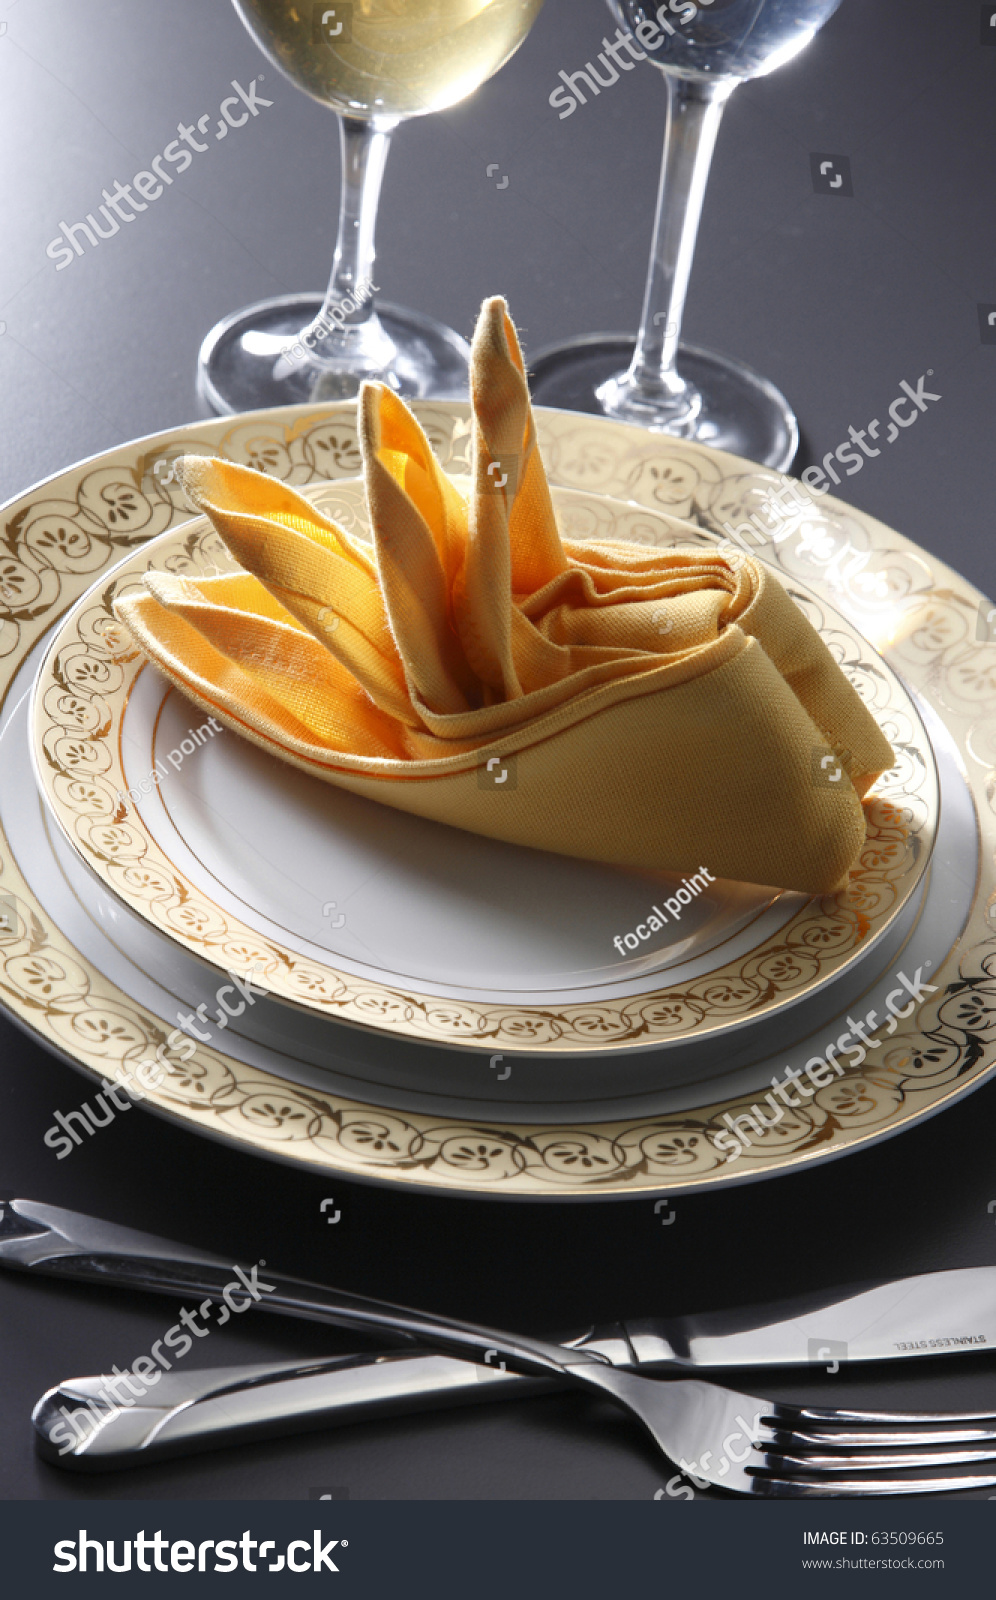 Table Setting For Fine Dining Or Party Cutlery And Plate Set Up For Wedding